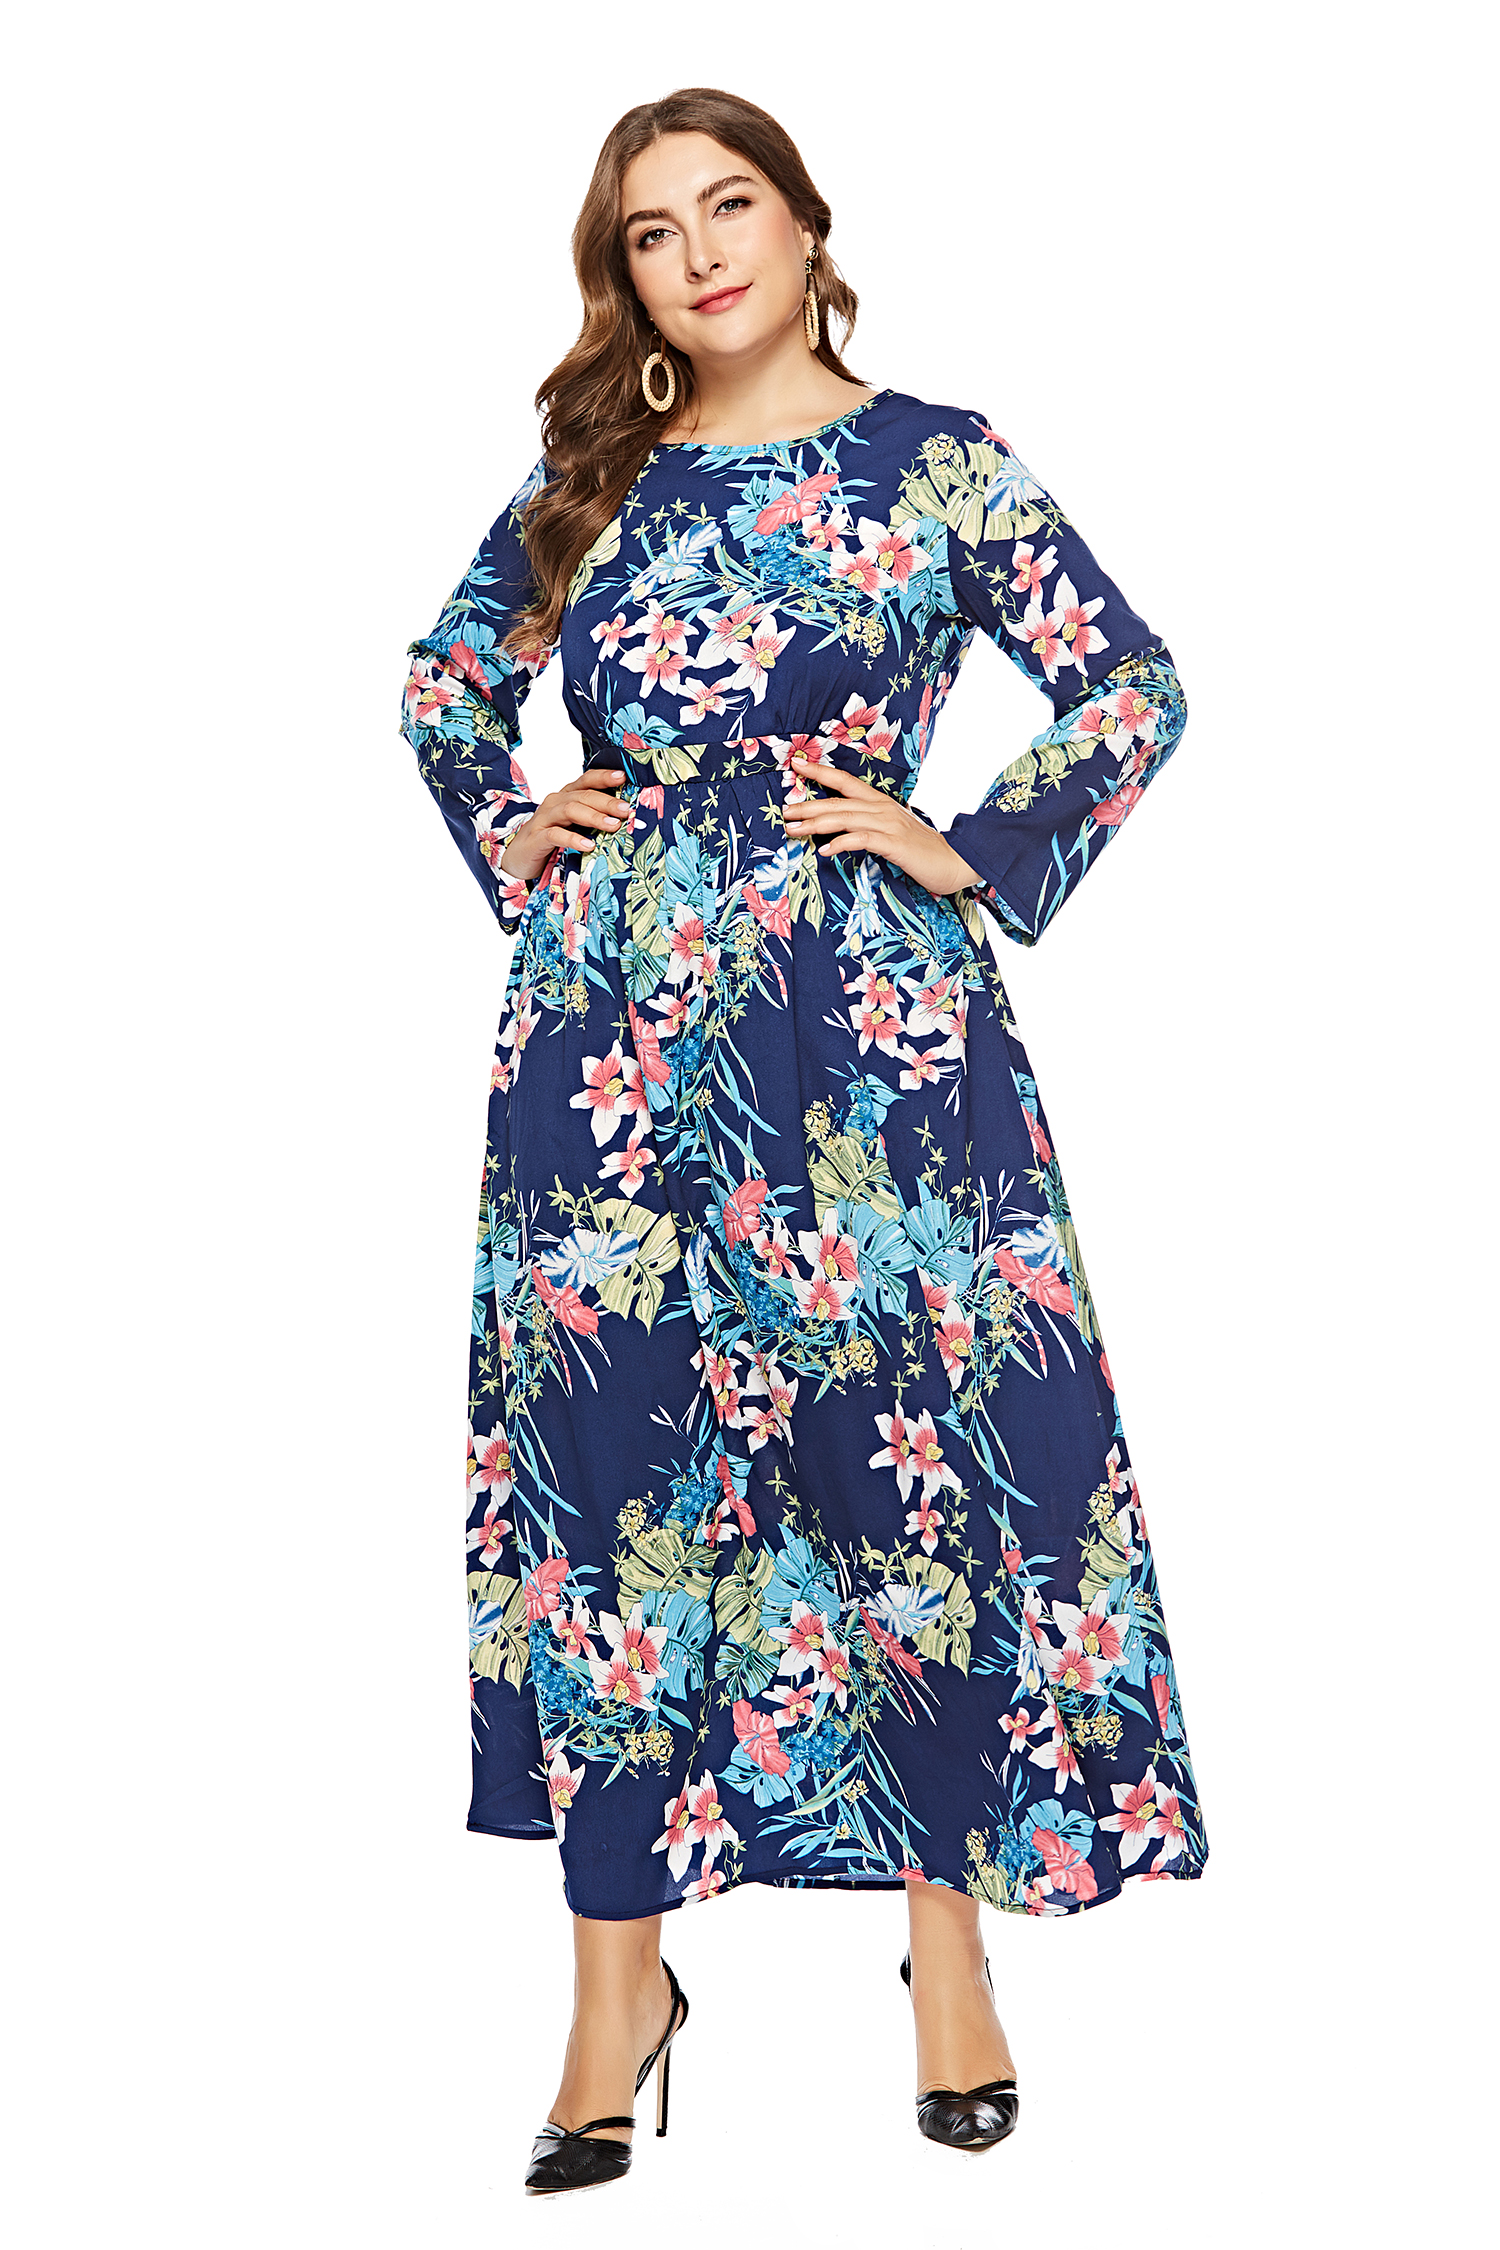 5a0663e3707 US  13.99 - Plus Size Long Sleeve Floral Maxi Dress - www.global ...